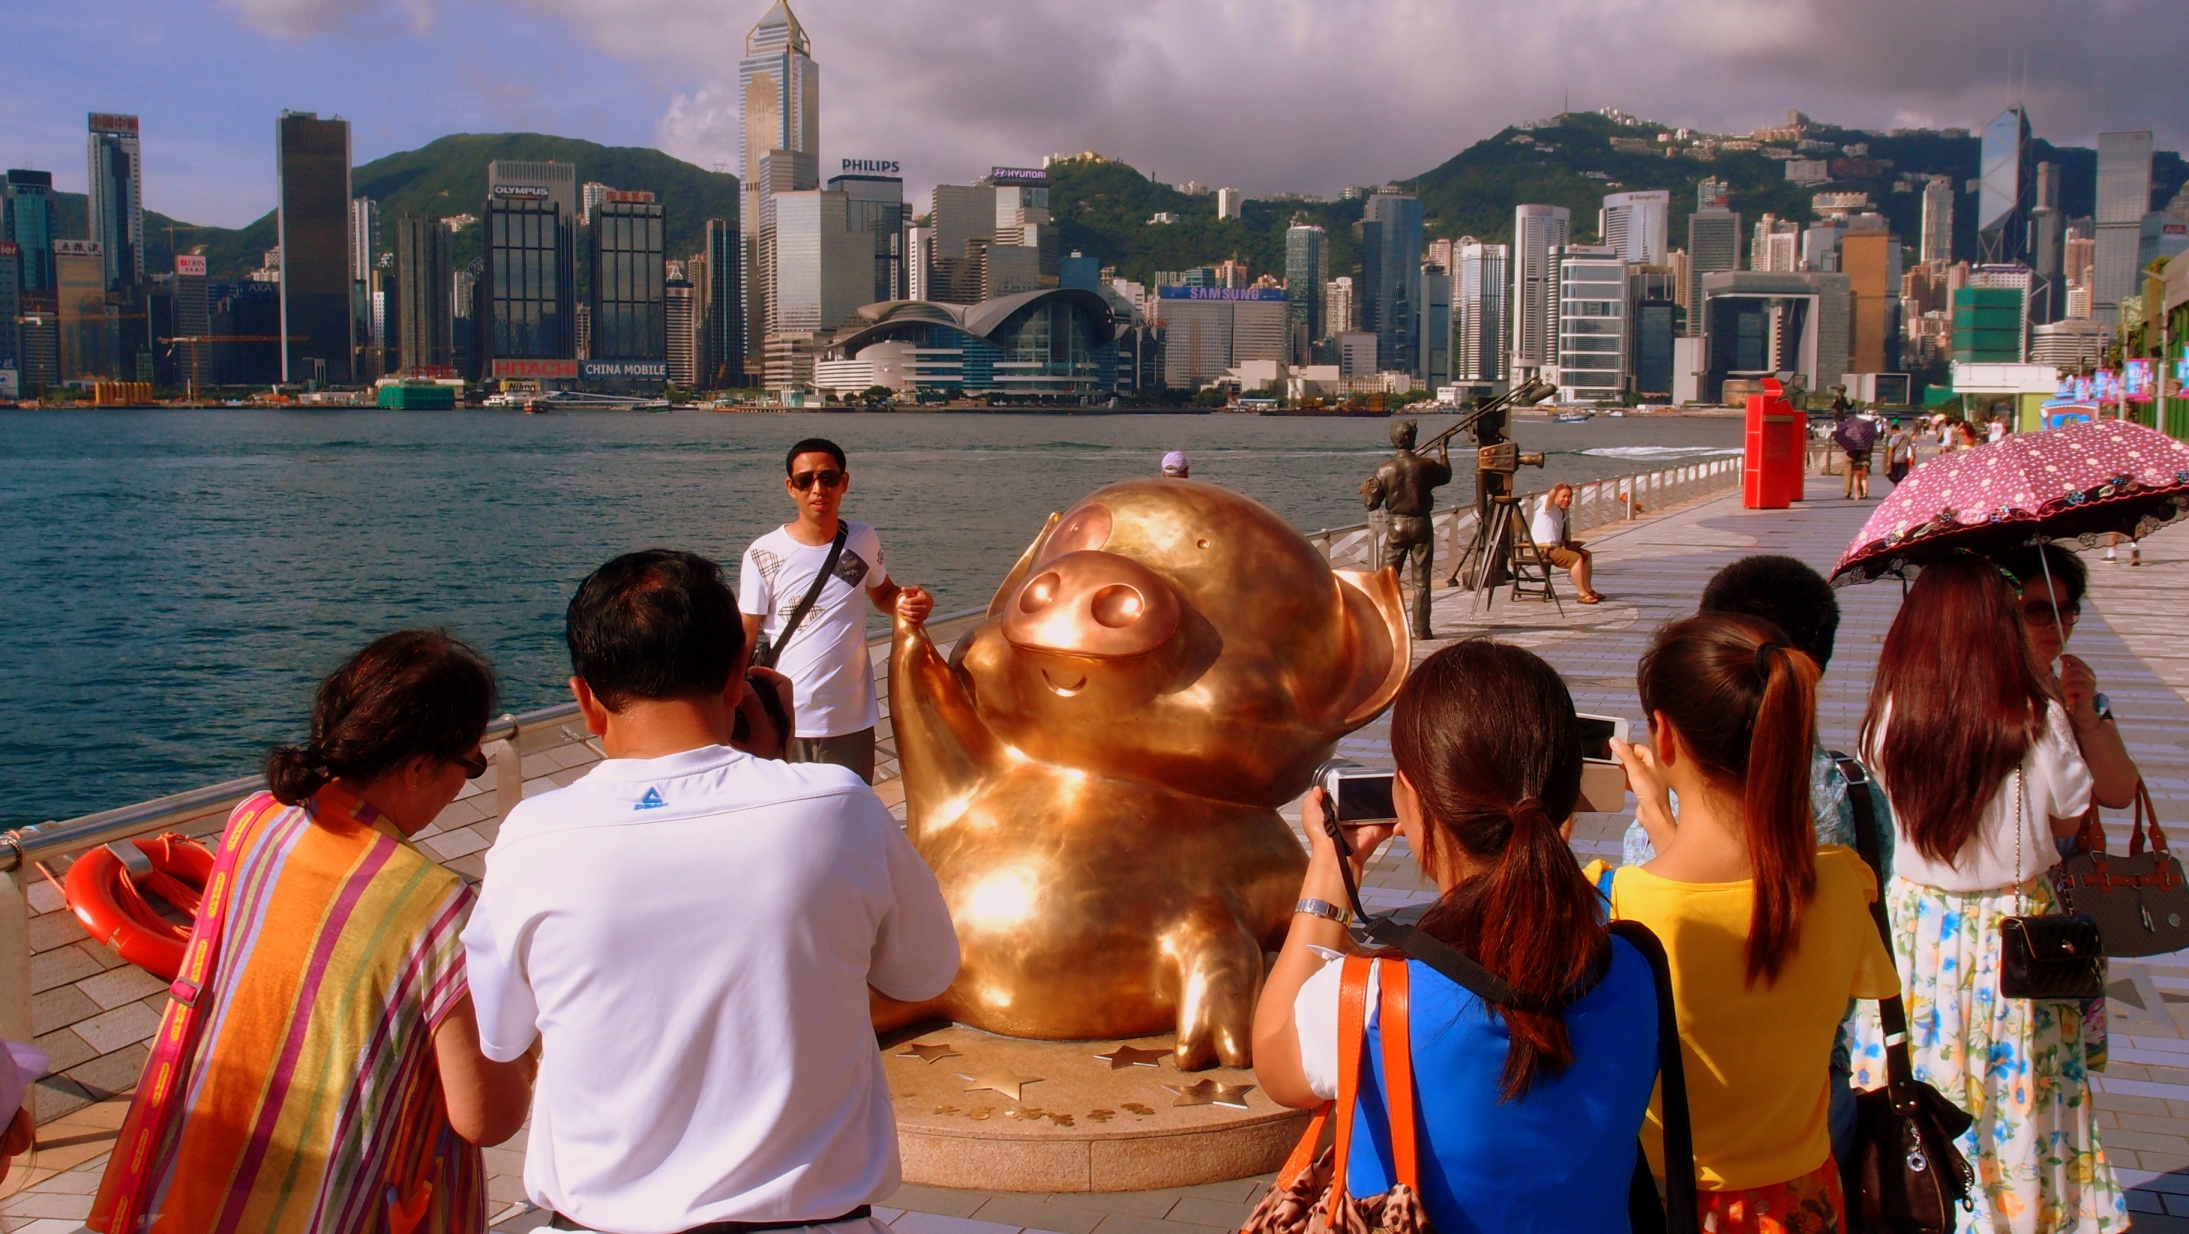 The gold pig cartoon character is by all accounts famous and legendary in Hong Kong, could have fooled me.